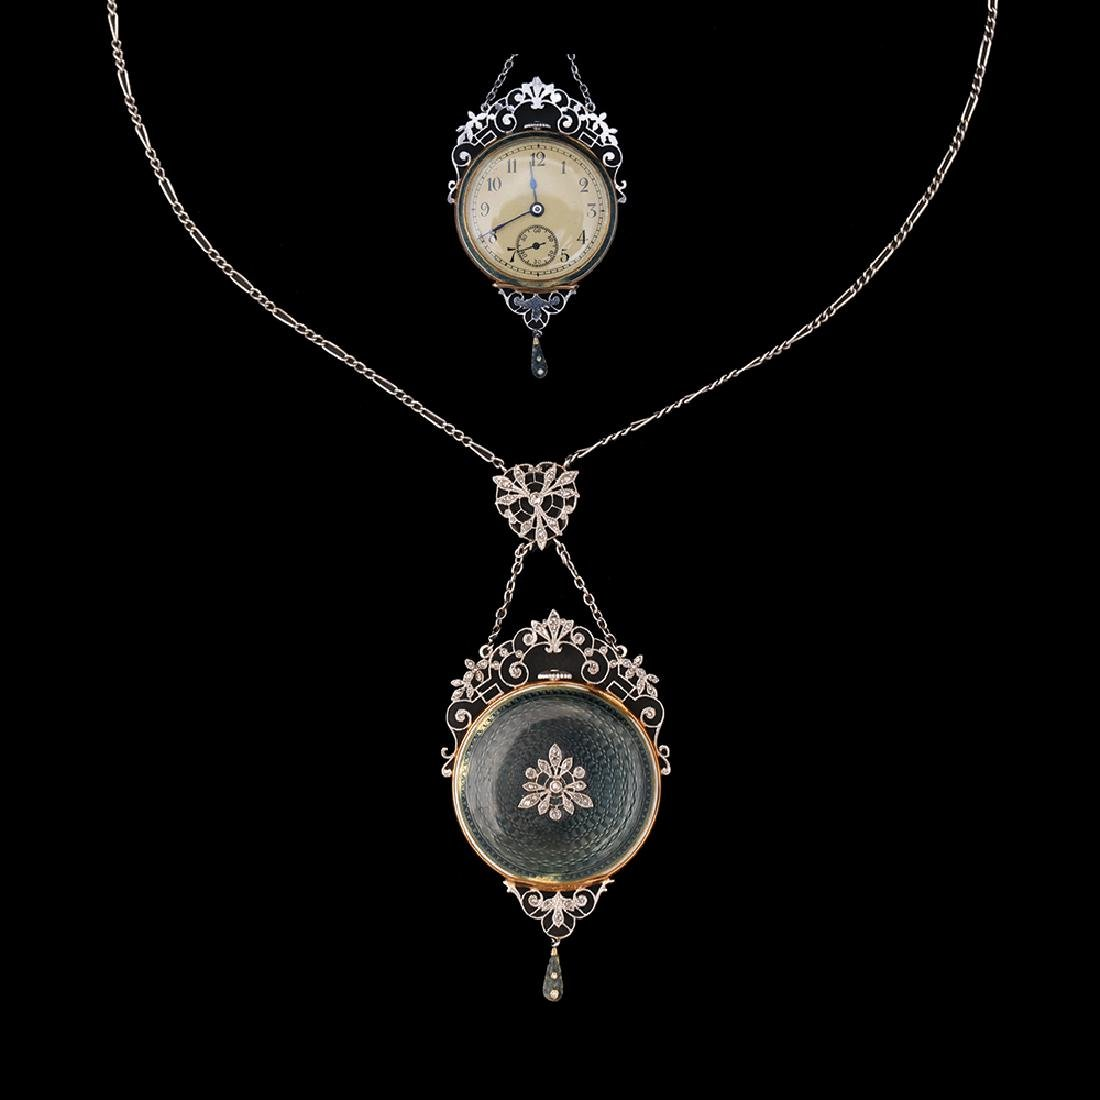 AN 18K GOLD AND PLATINUM PENDANT/POCKETWATCH